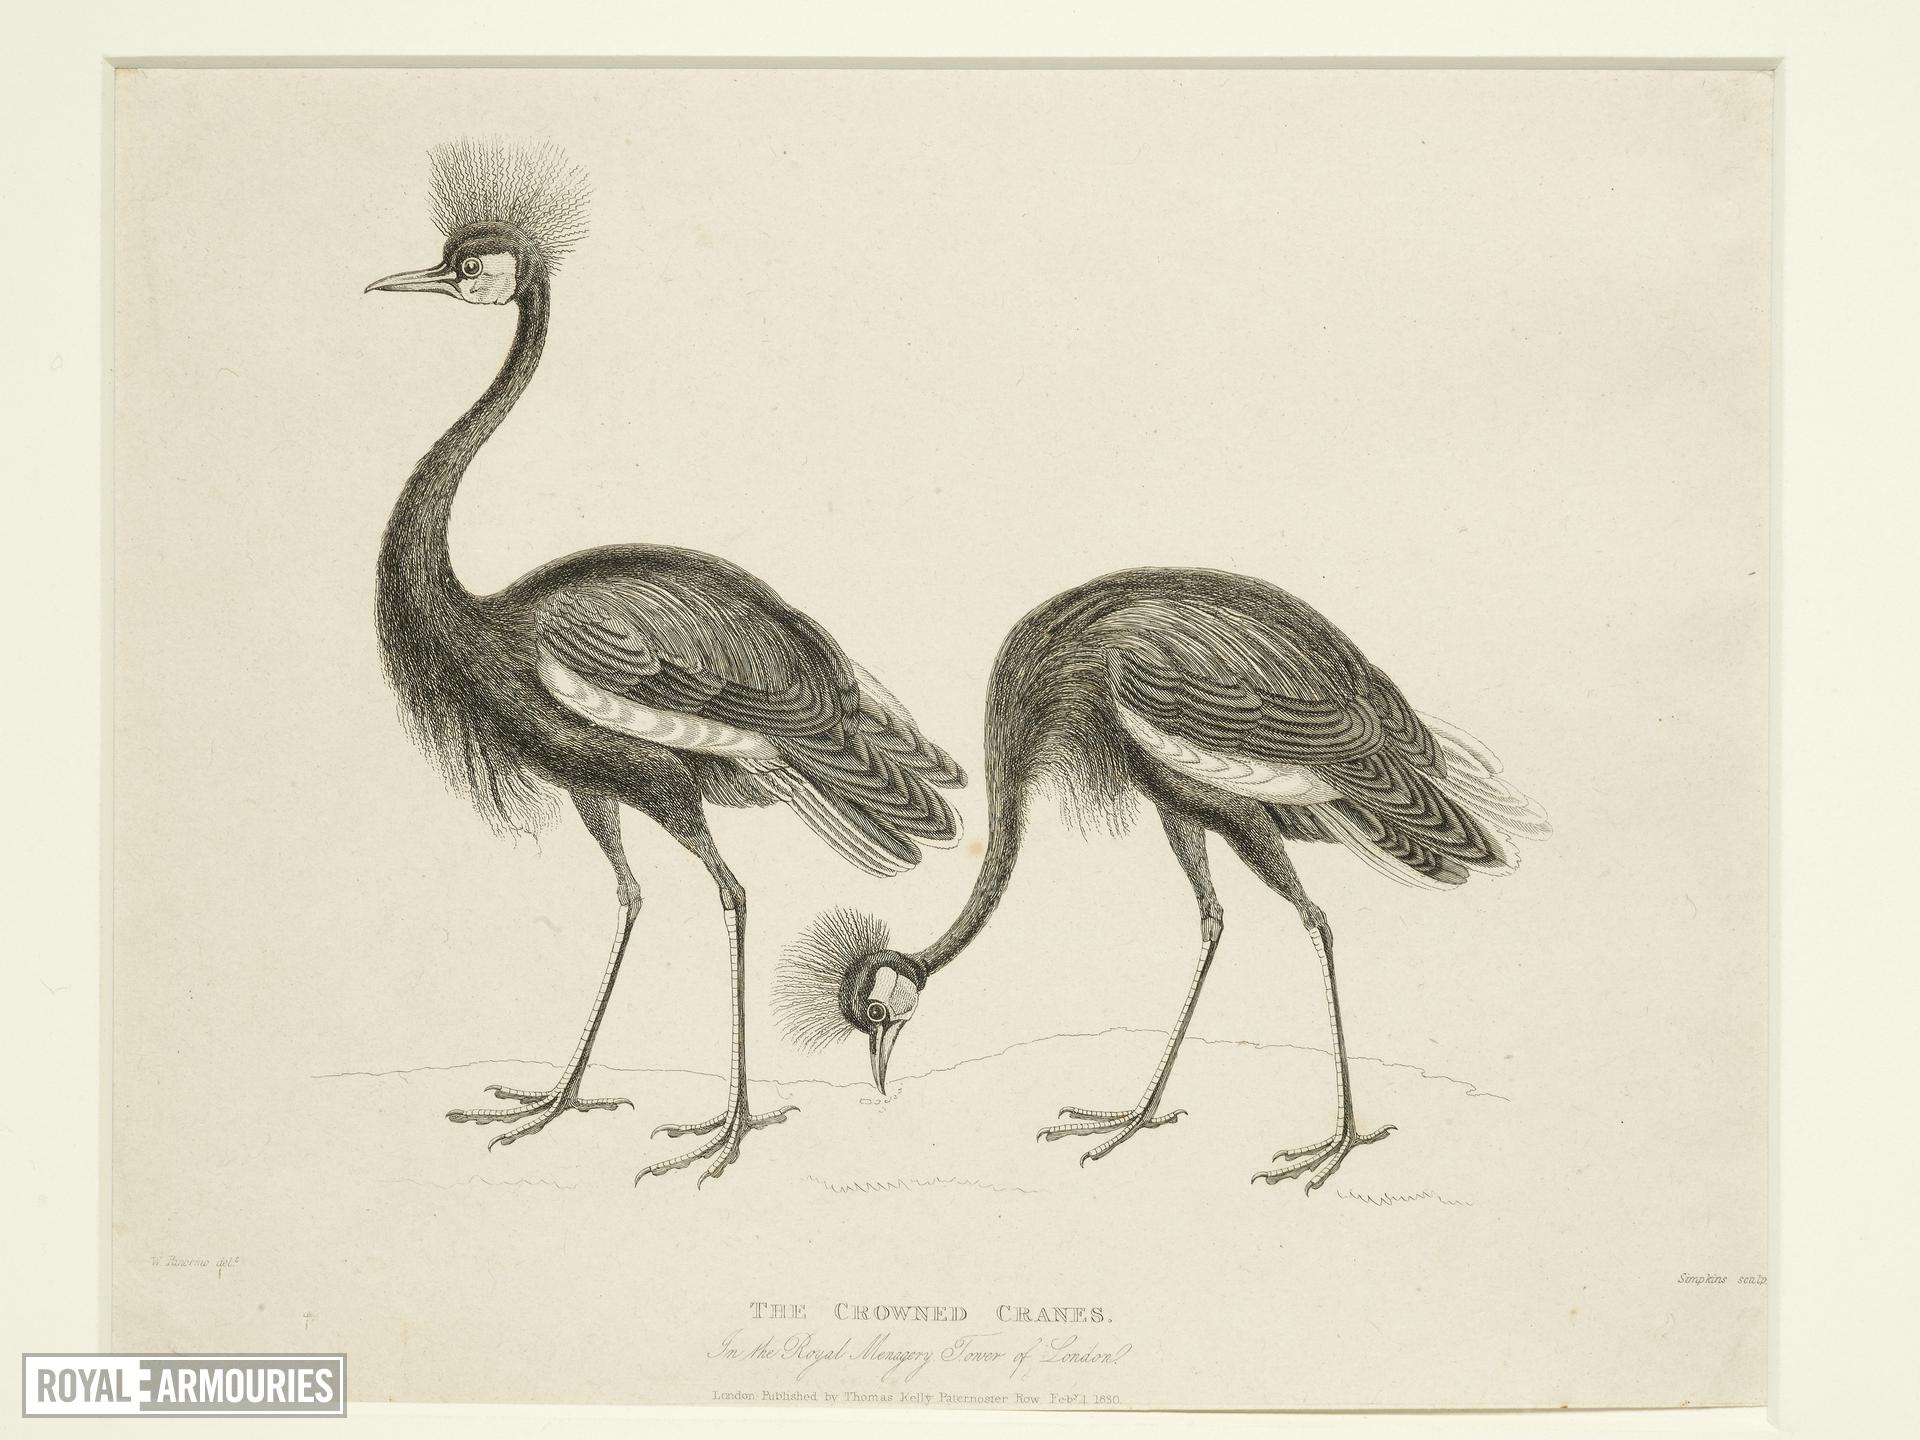 Print Entitled 'The Crowned Cranes in the Royal Menagery, Tower of London', dated 1 February, 1830.